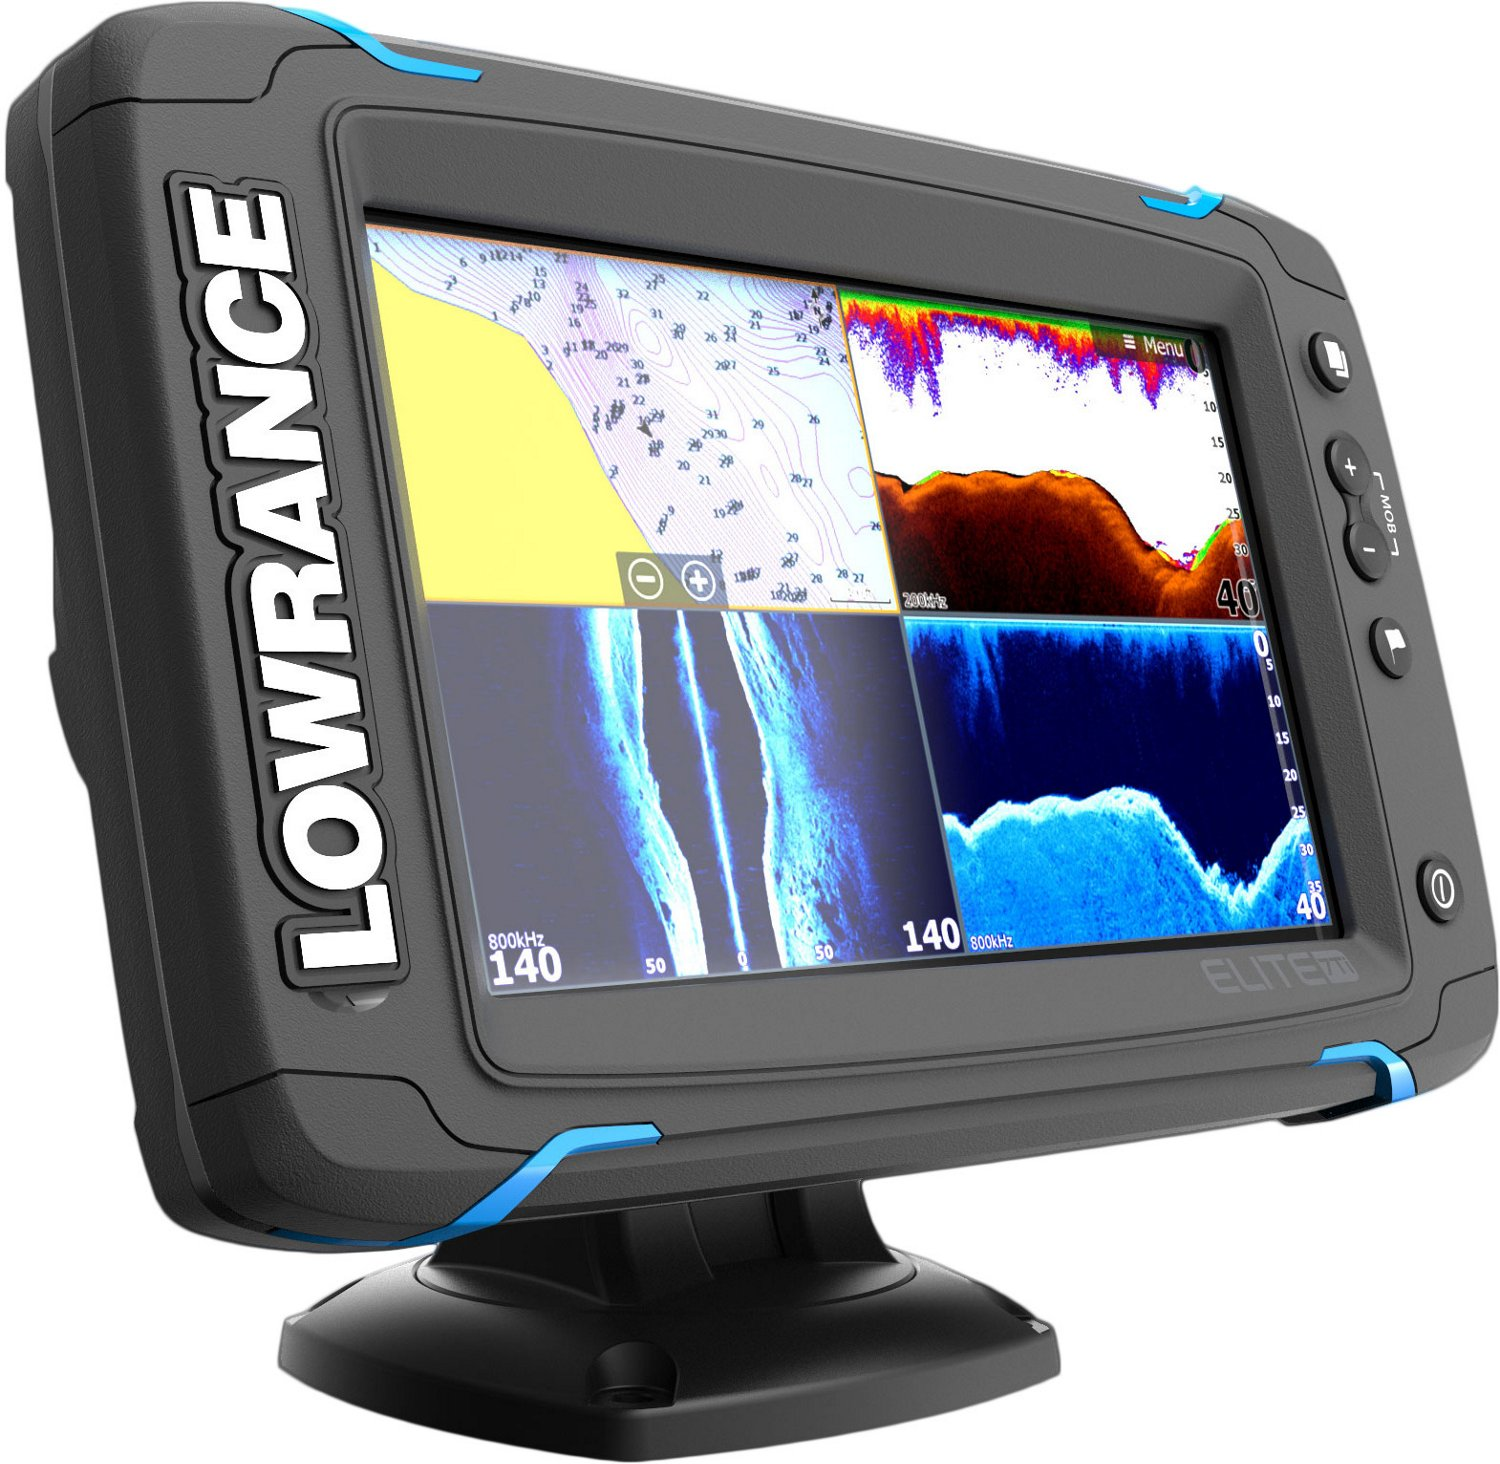 Fish Finders Depth Chartplotters Marine Gps Academy Wiring Diagram Lowrance Hook 7 Display Product Reviews For Elite Ti Totalscan Fishfinder Combo